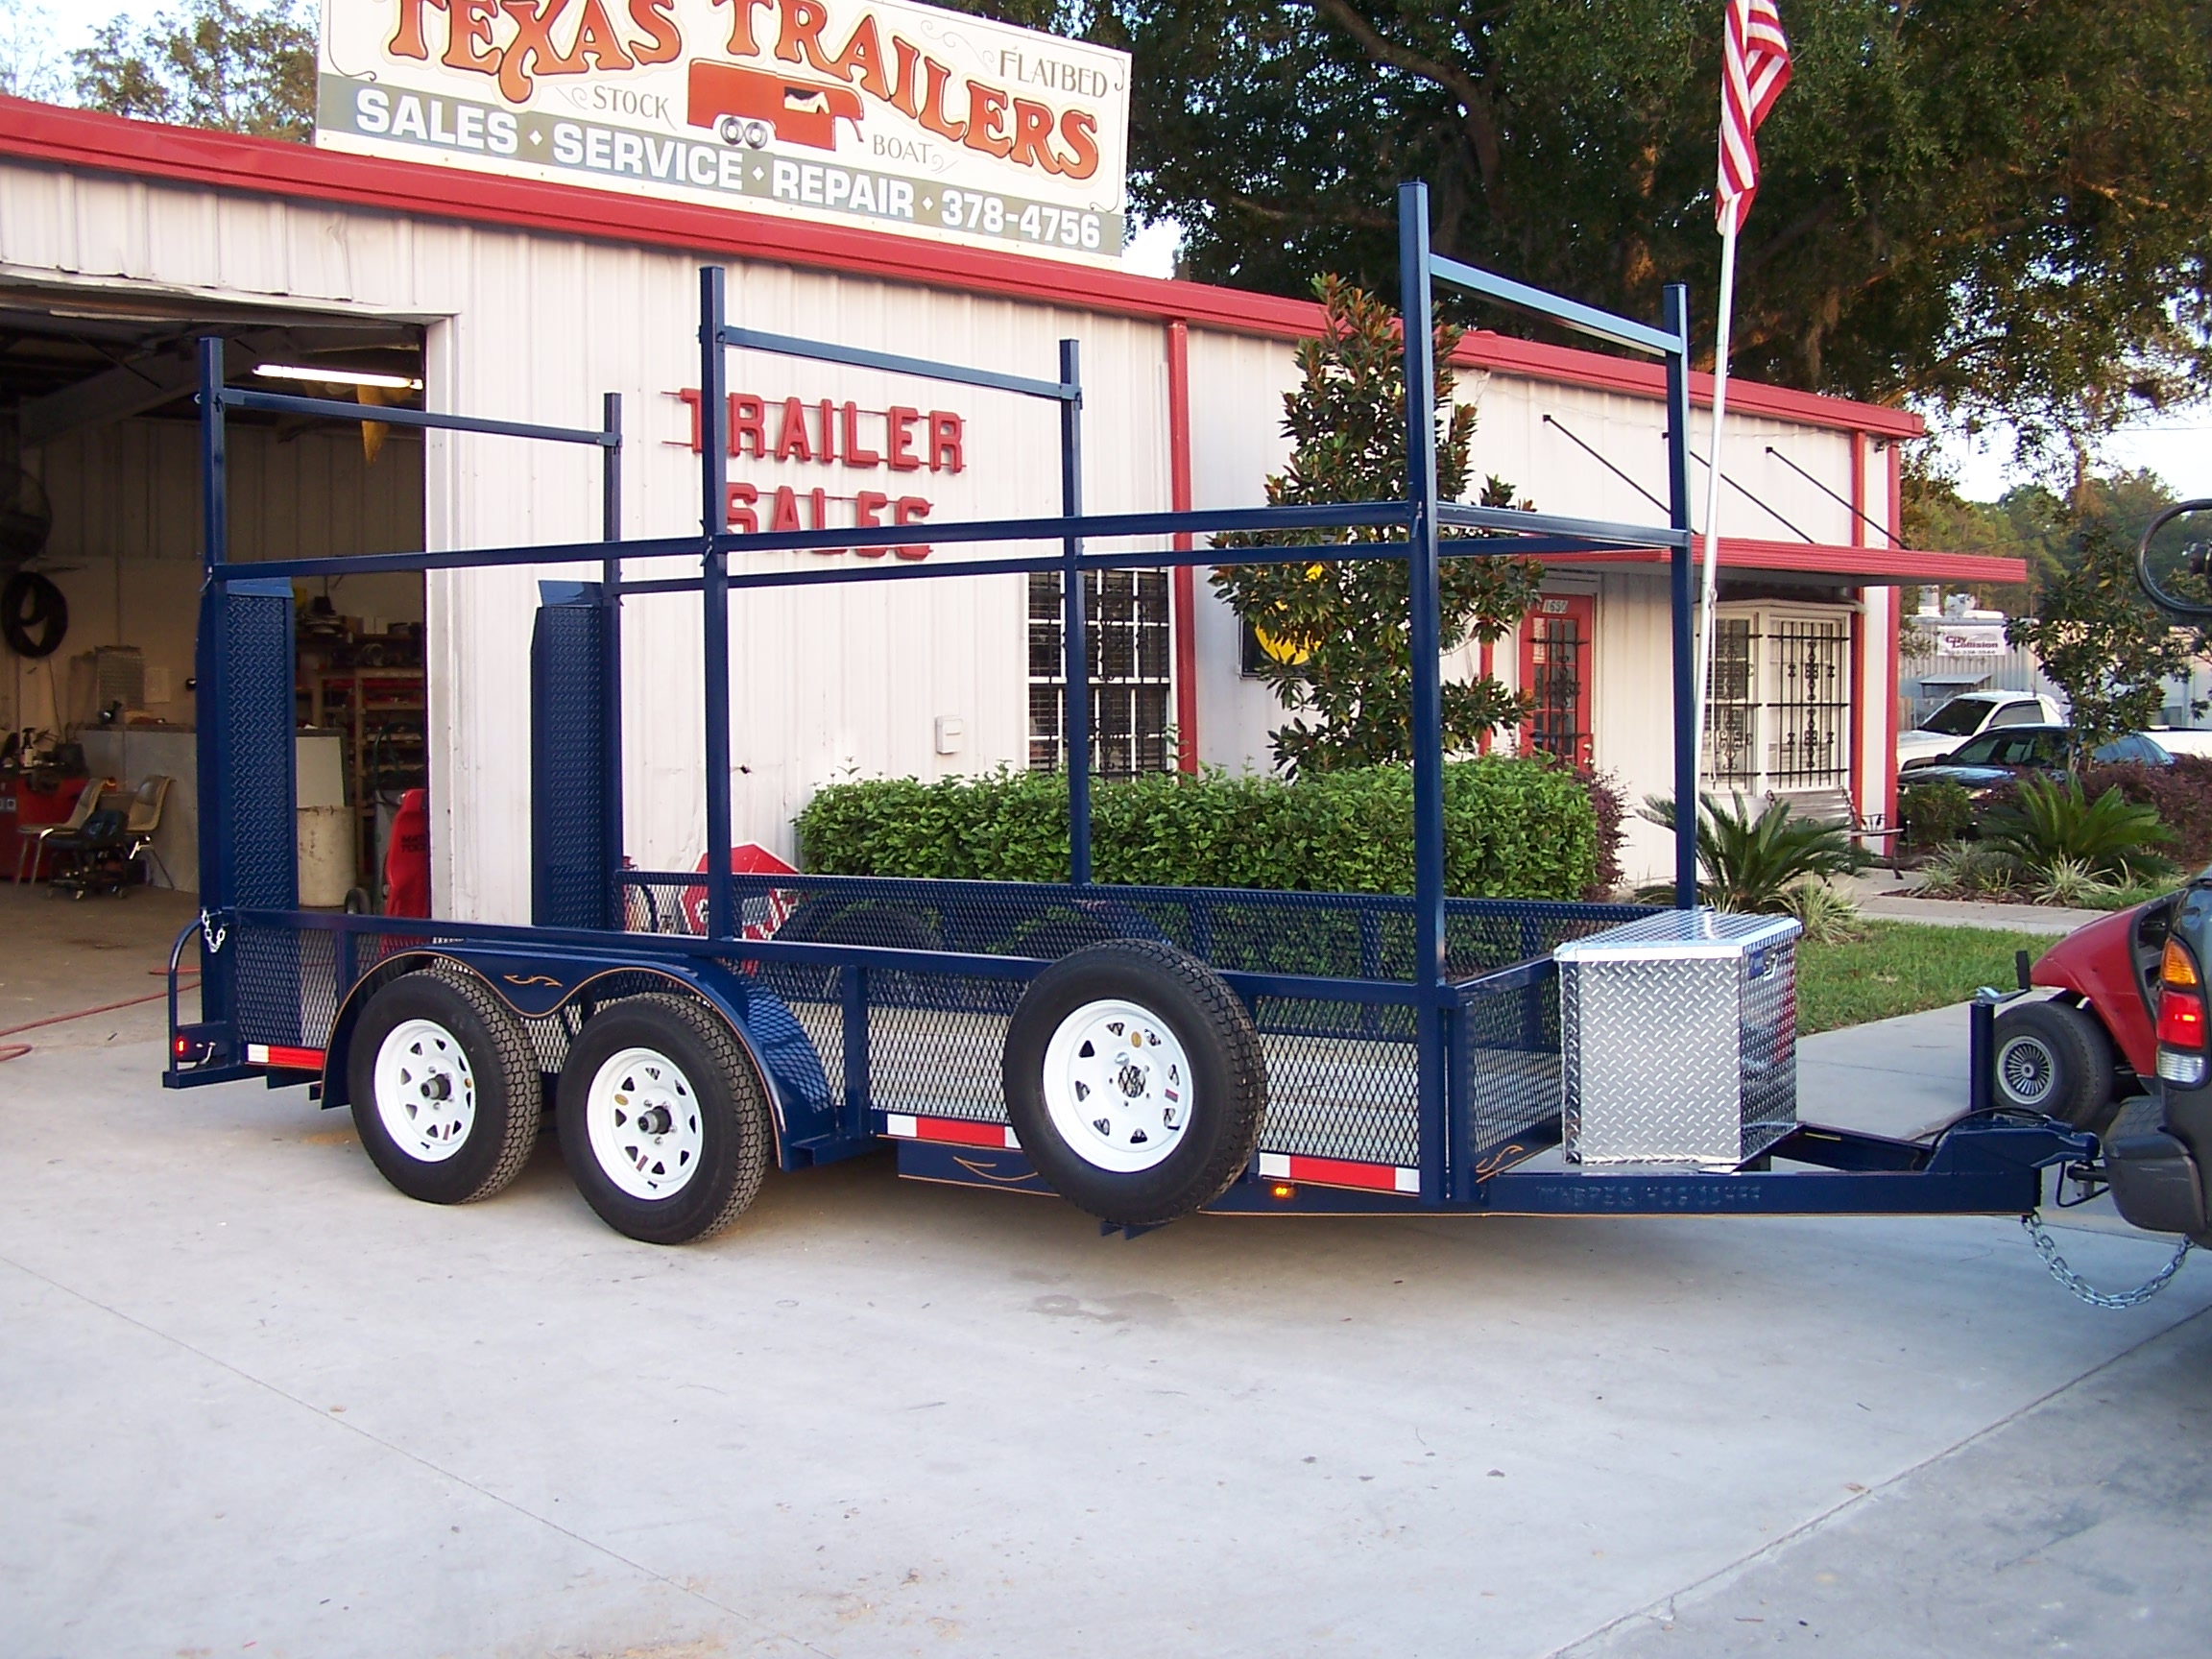 Texas Trailers Texas Trailers Trailers For Sale